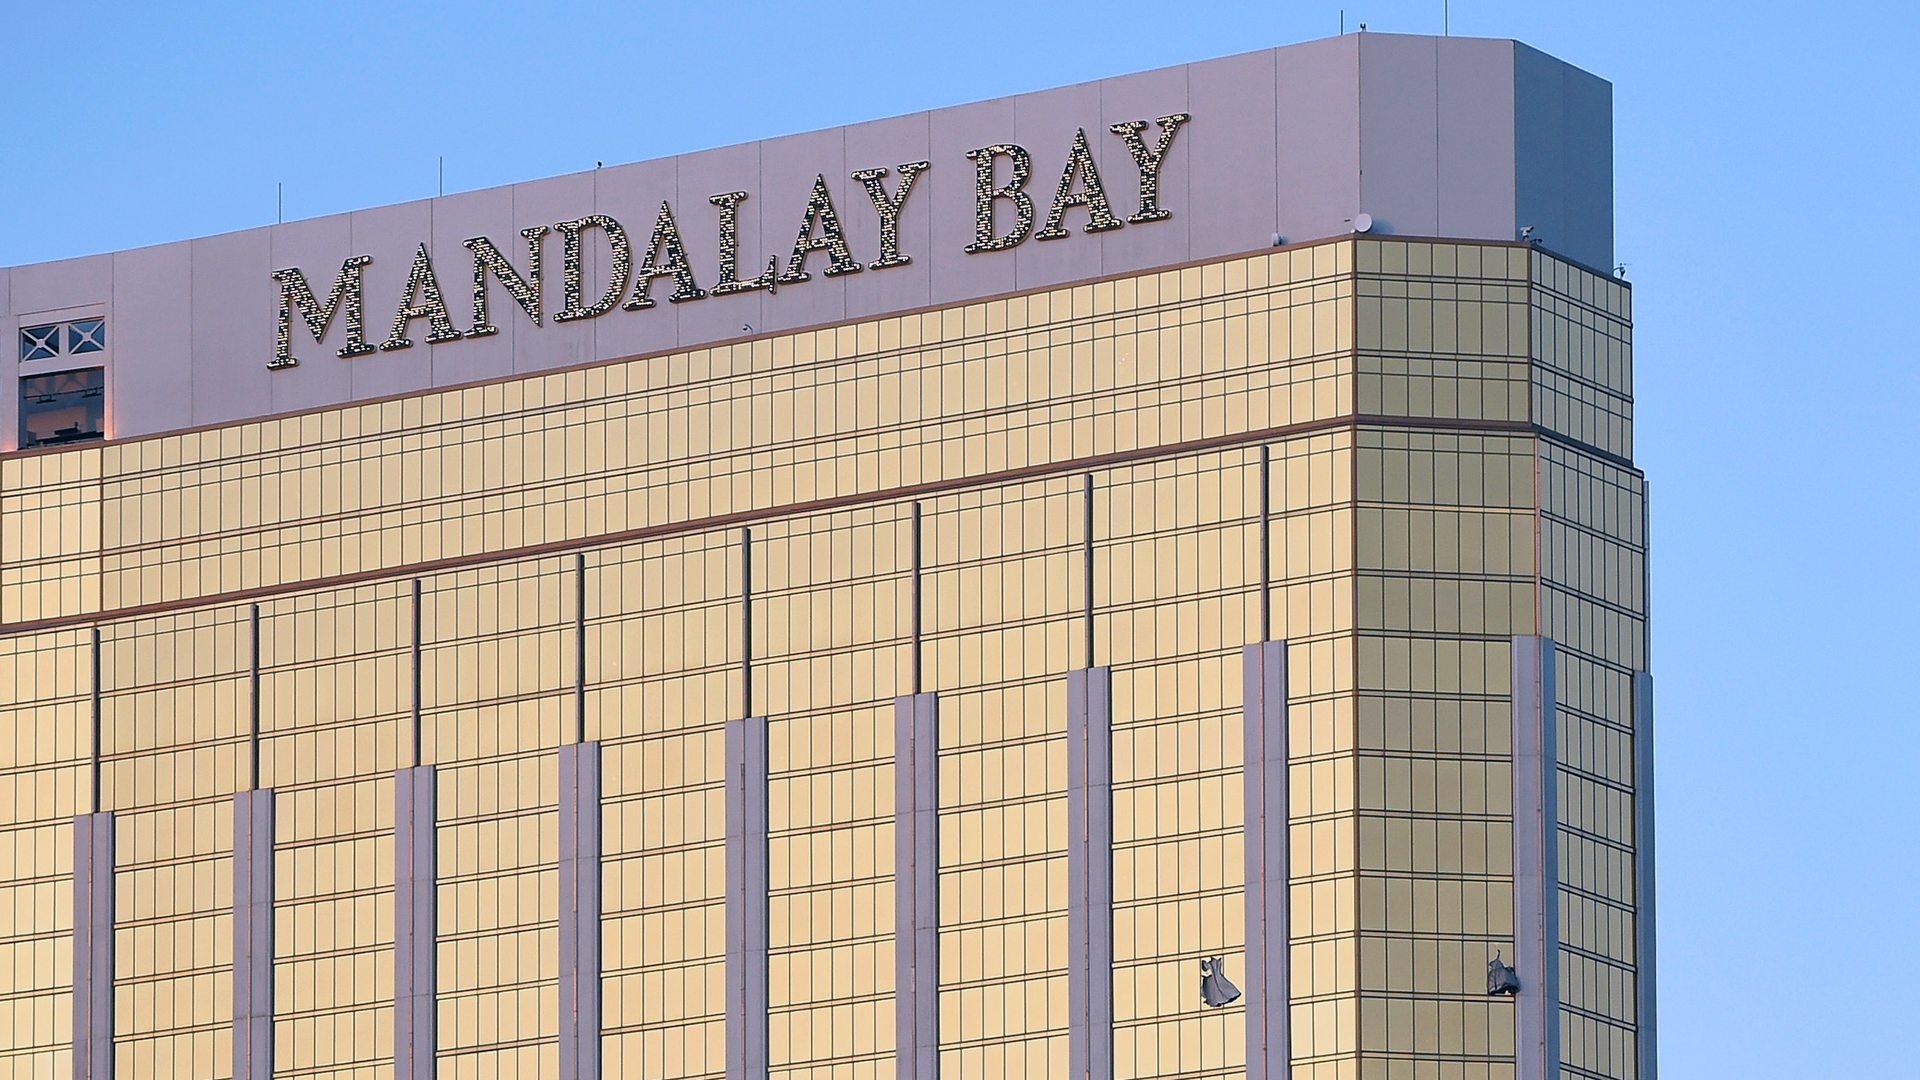 Las Vegas Mass Shooting broken windows at Mandalay Bay-159532.jpg13247784